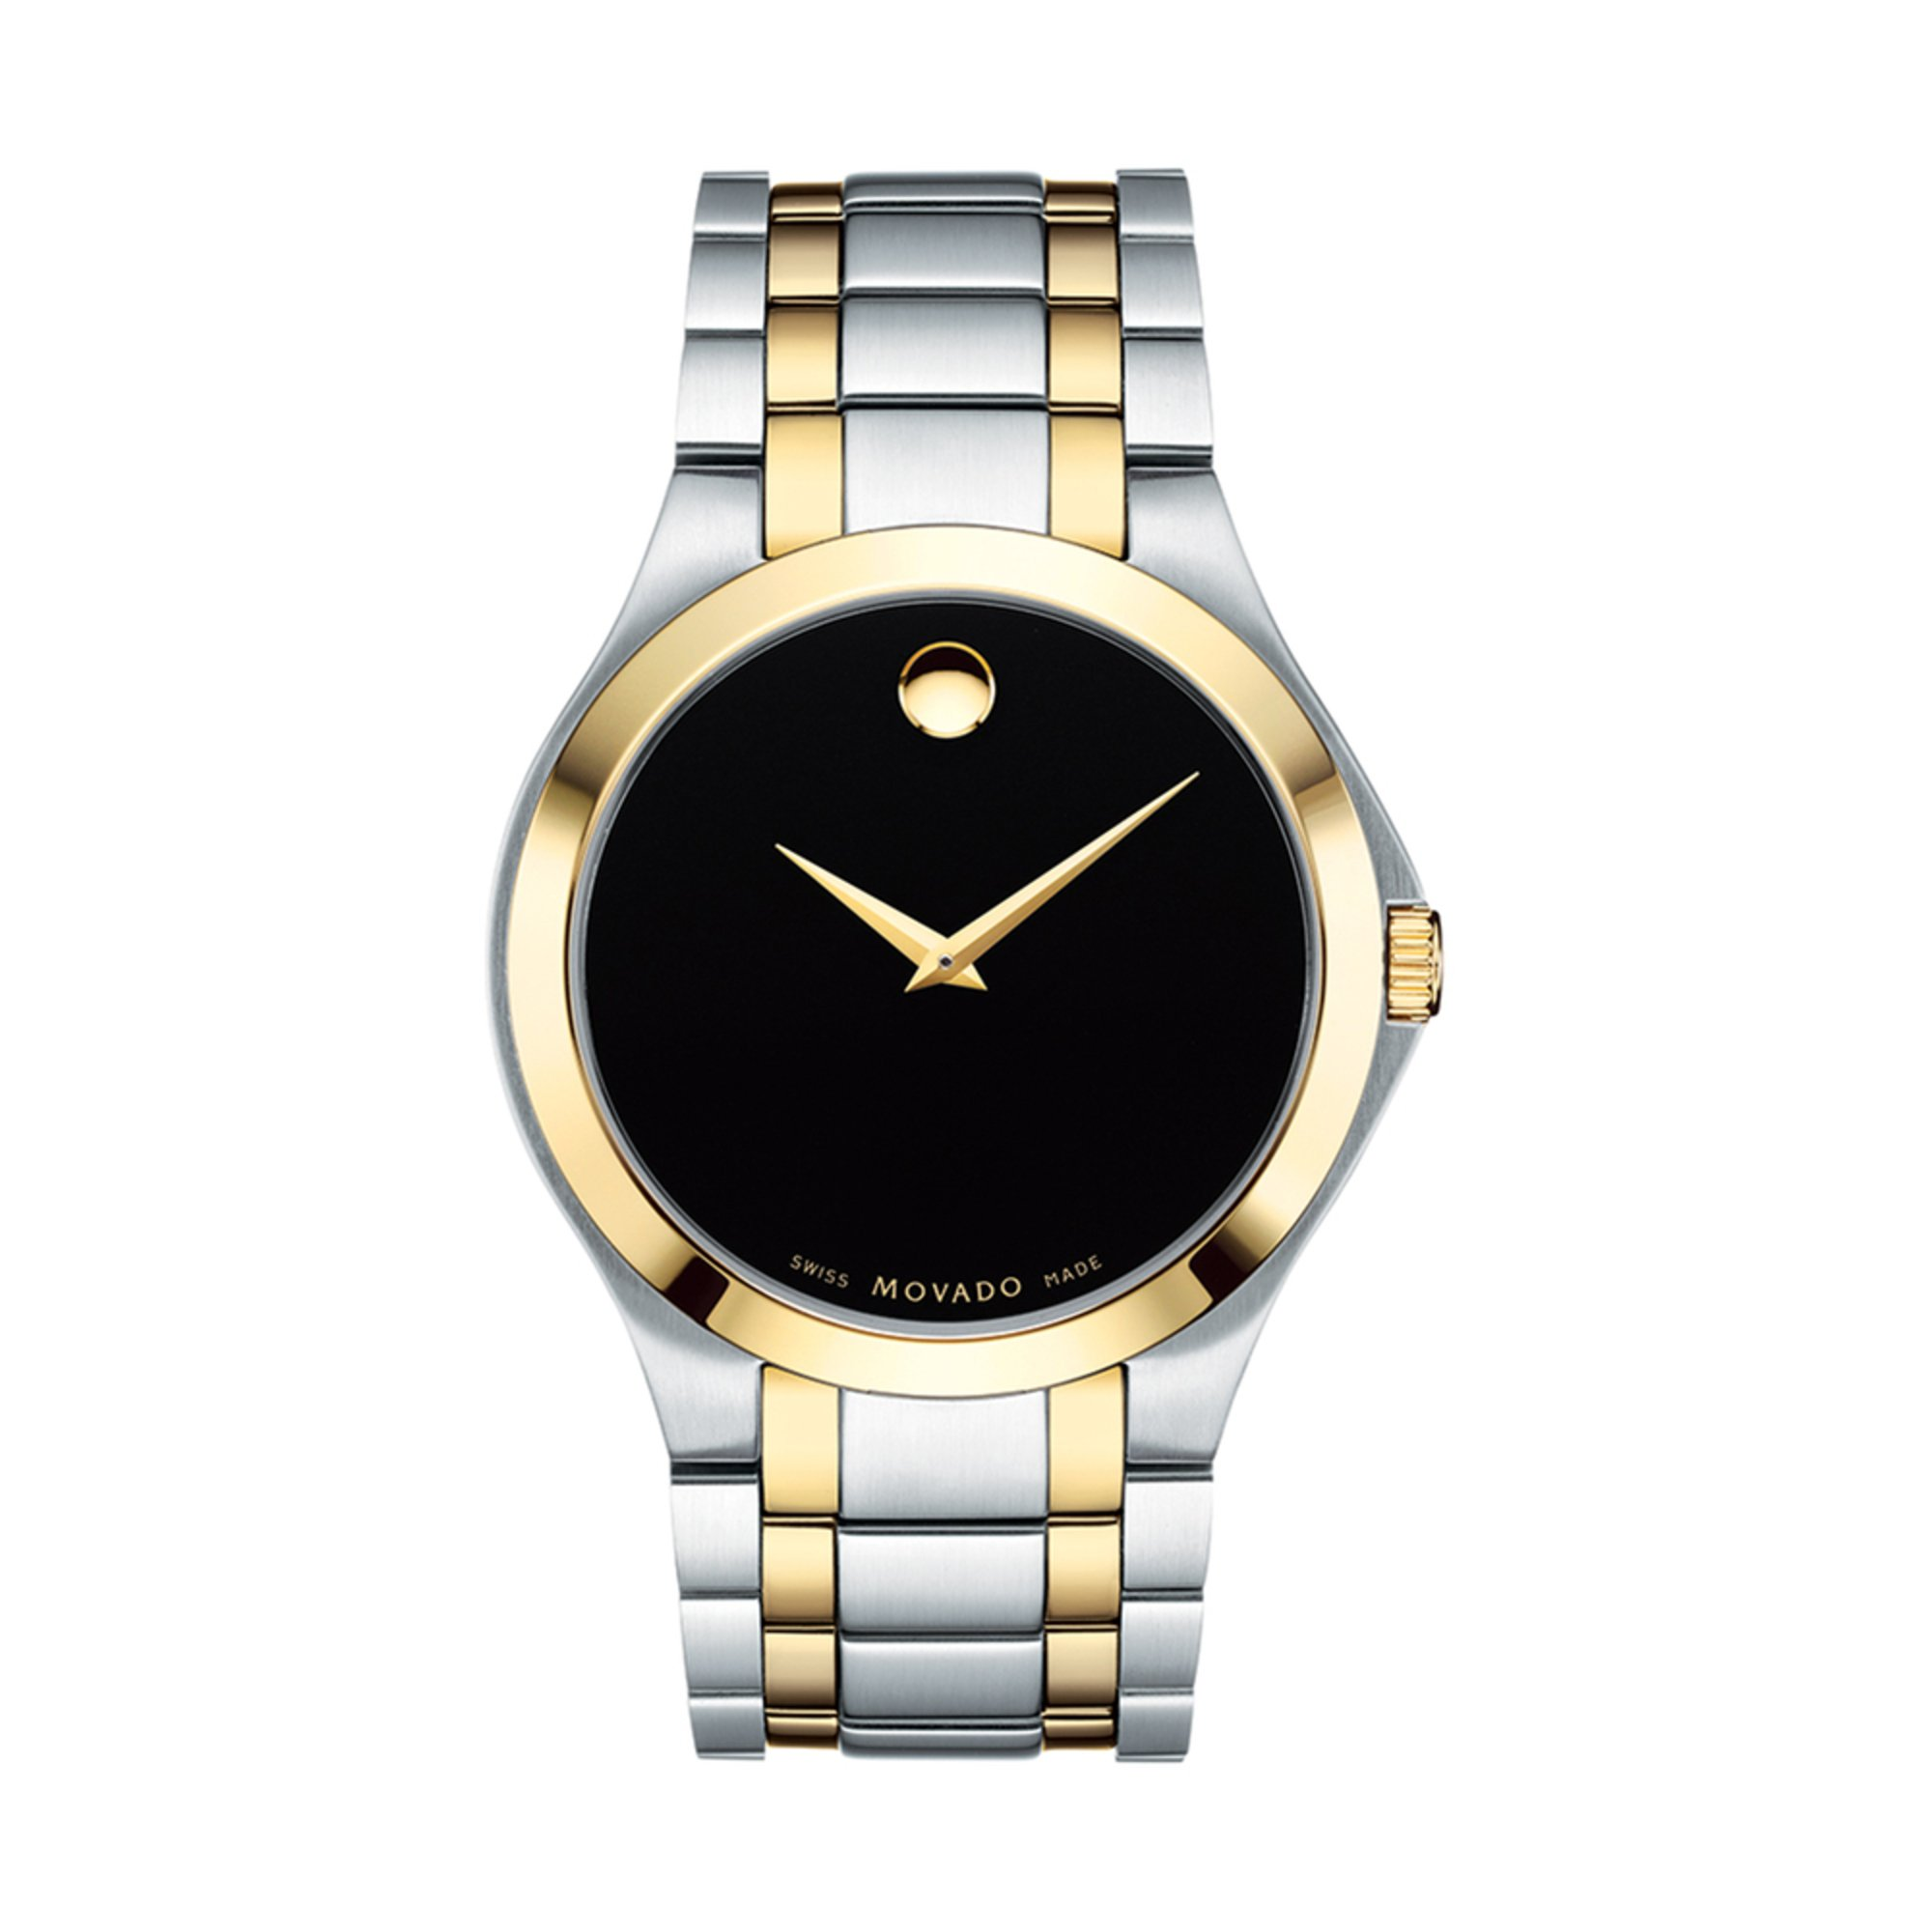 7ed78e1de7b Movado. Movado Men s Collection Watch 0606896